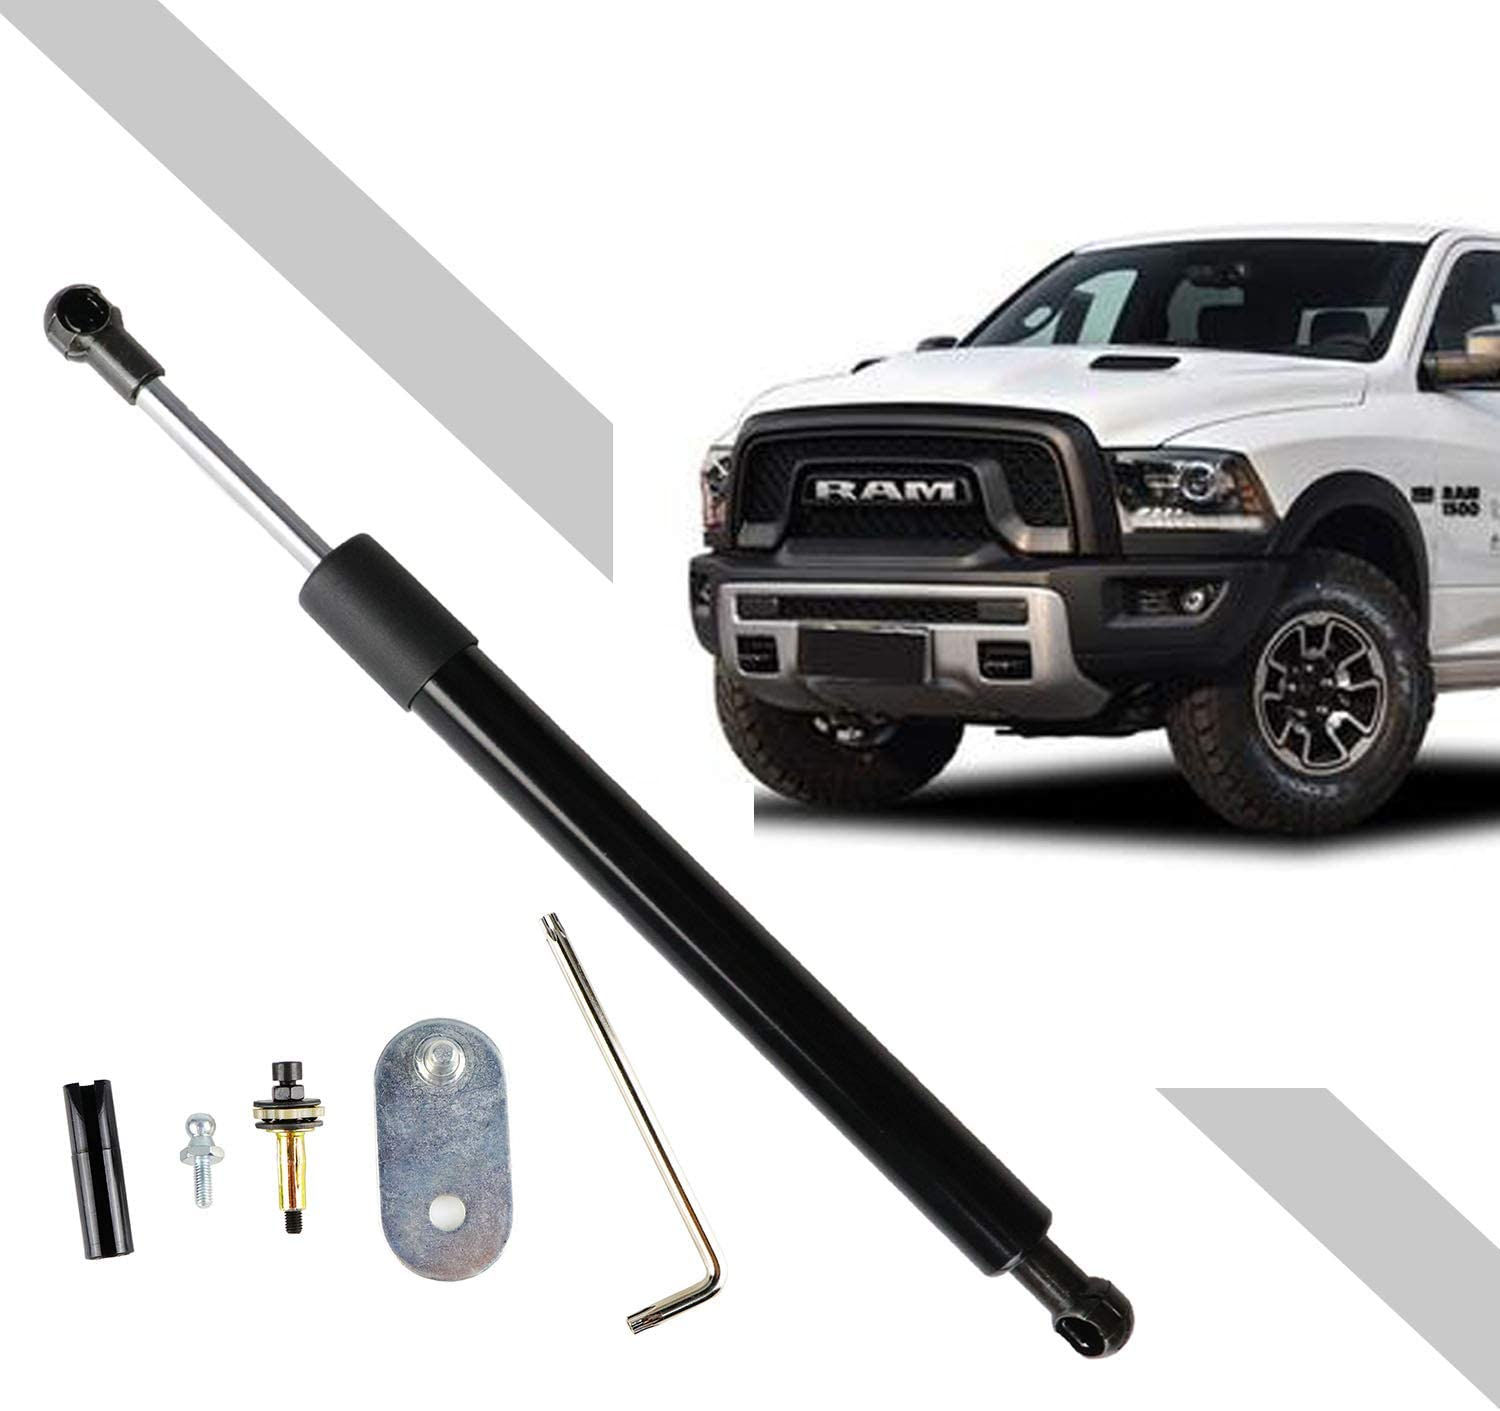 EDIONS Shock Absorber 2pcs Lift Support Tailgate Assist Direct Fit Hydraulic d Car Rear Replacement Durable Spring sy Install Carbon Steel Accessories Left Right for Ford Ranger T5